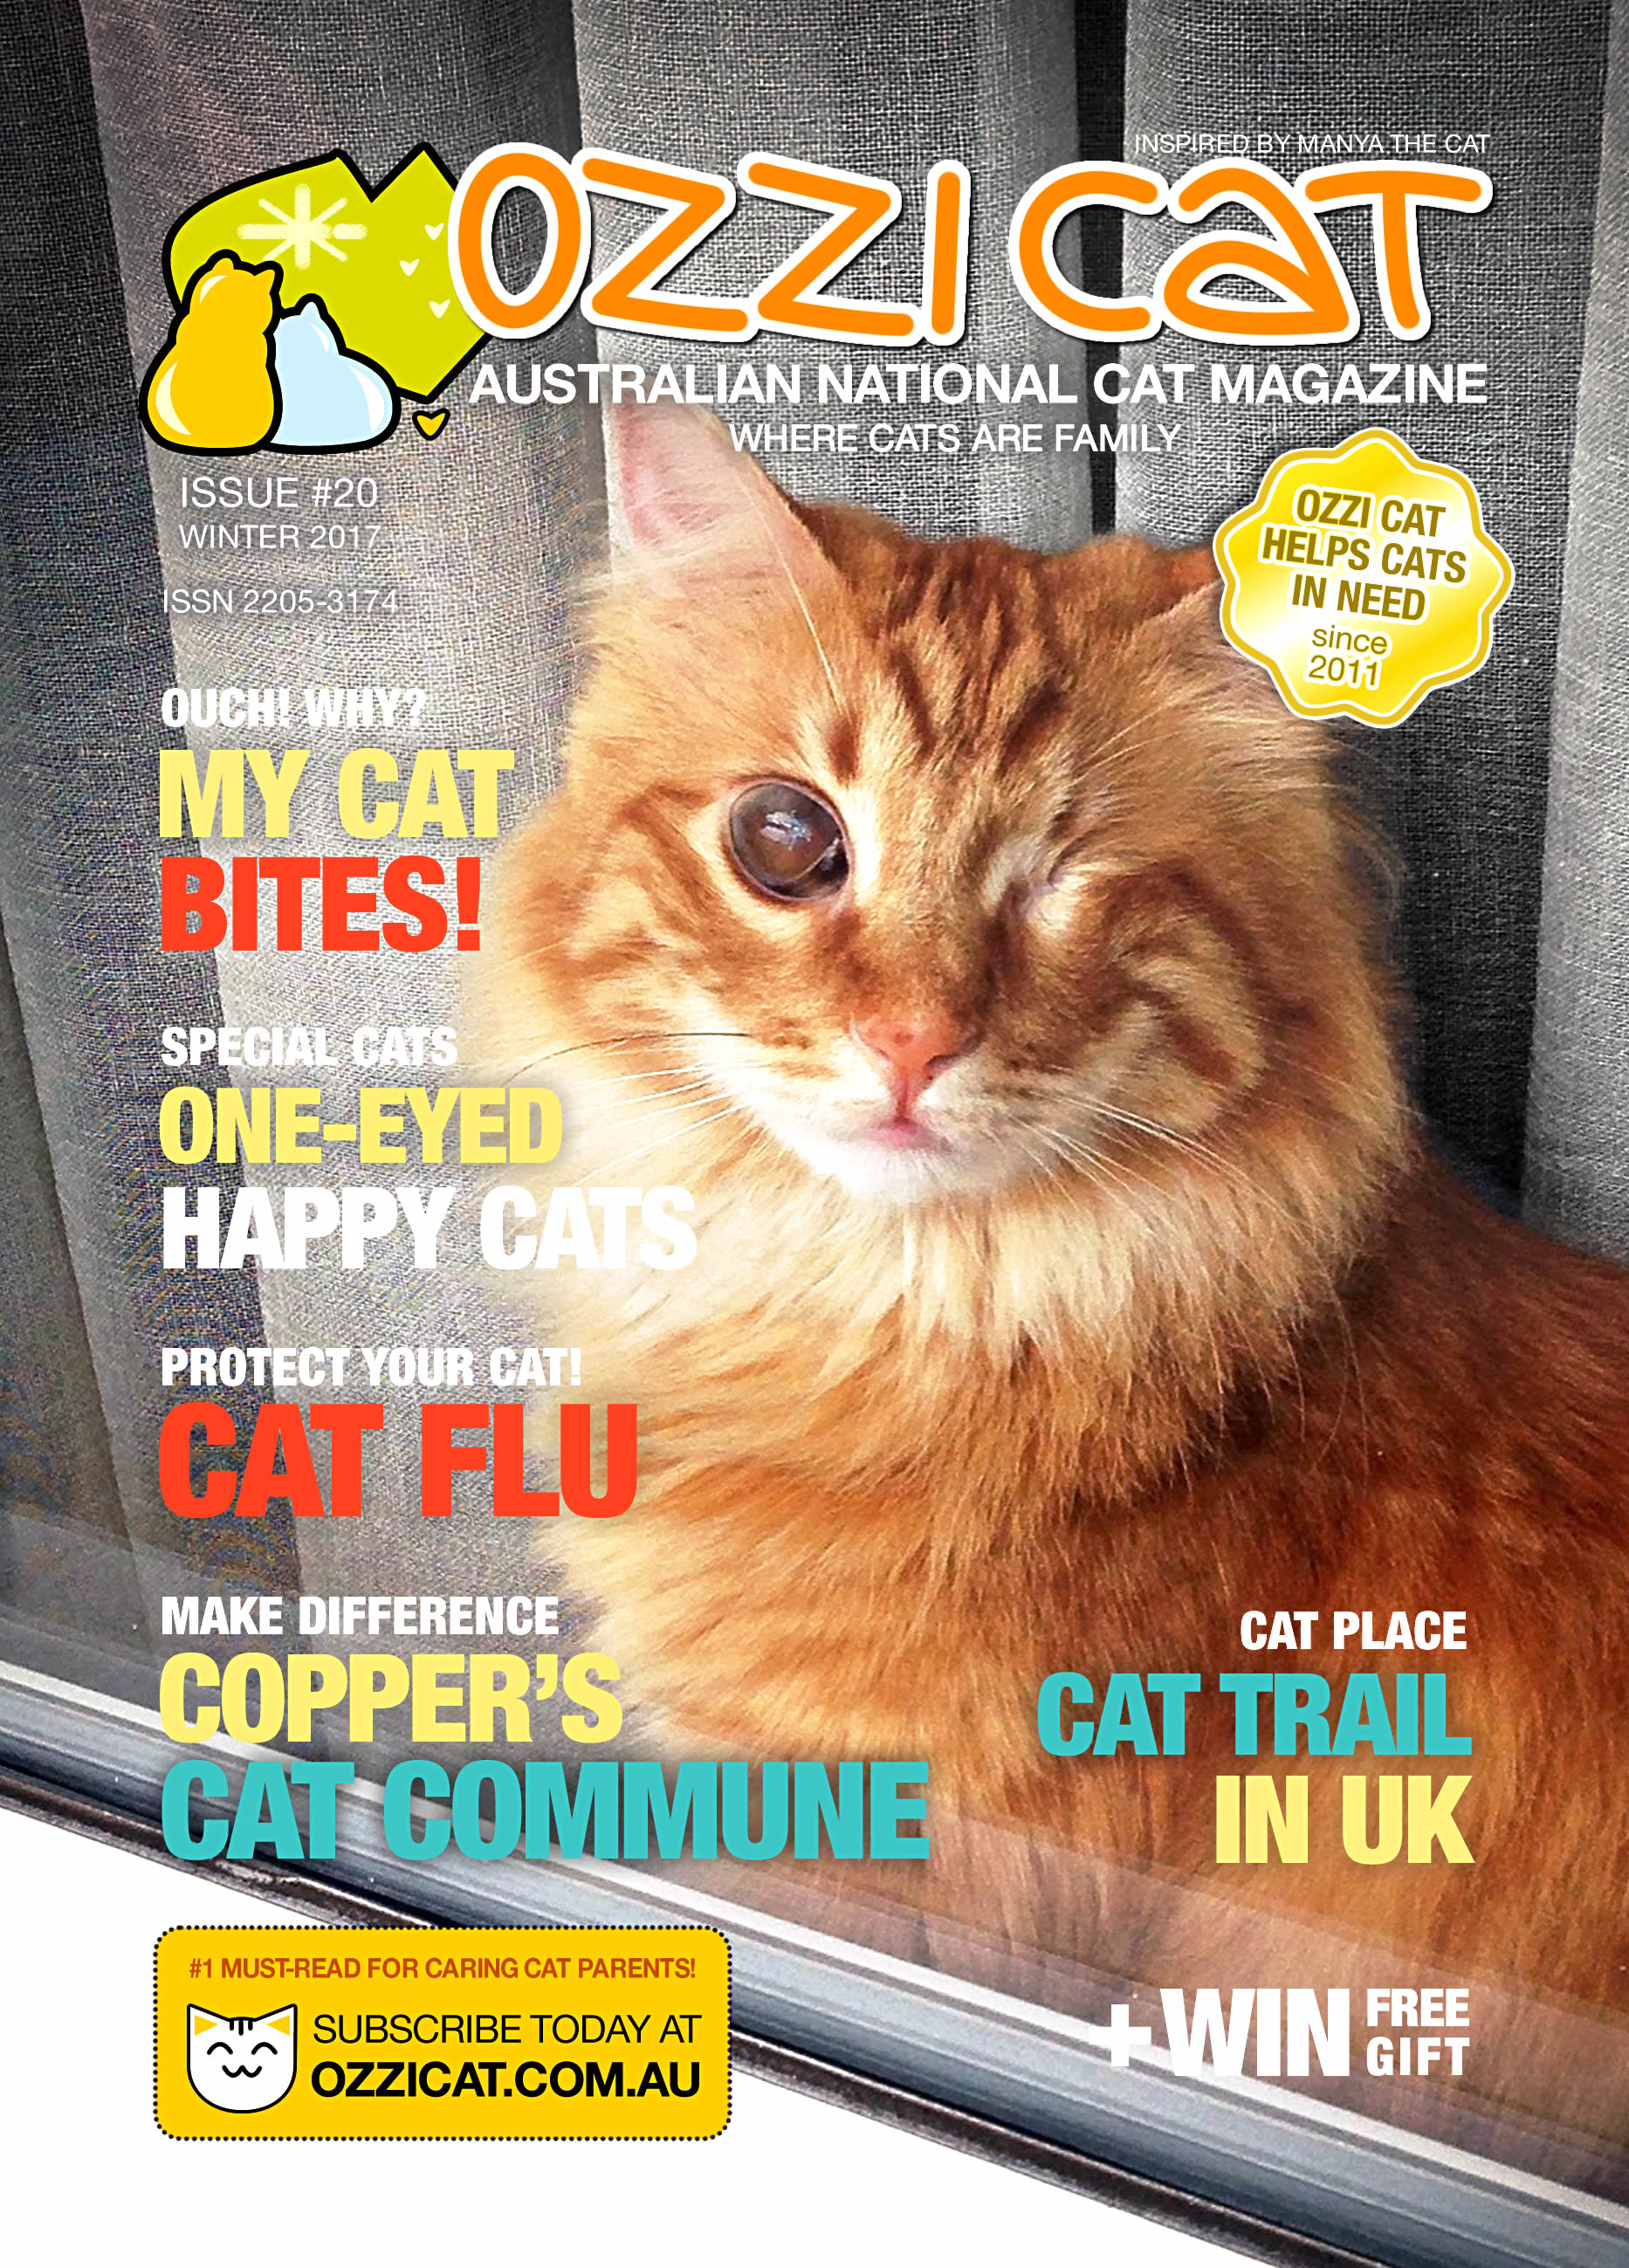 Ozzi Cat - Australian National Cat Magazine - Issue 20 - WINTER 2017